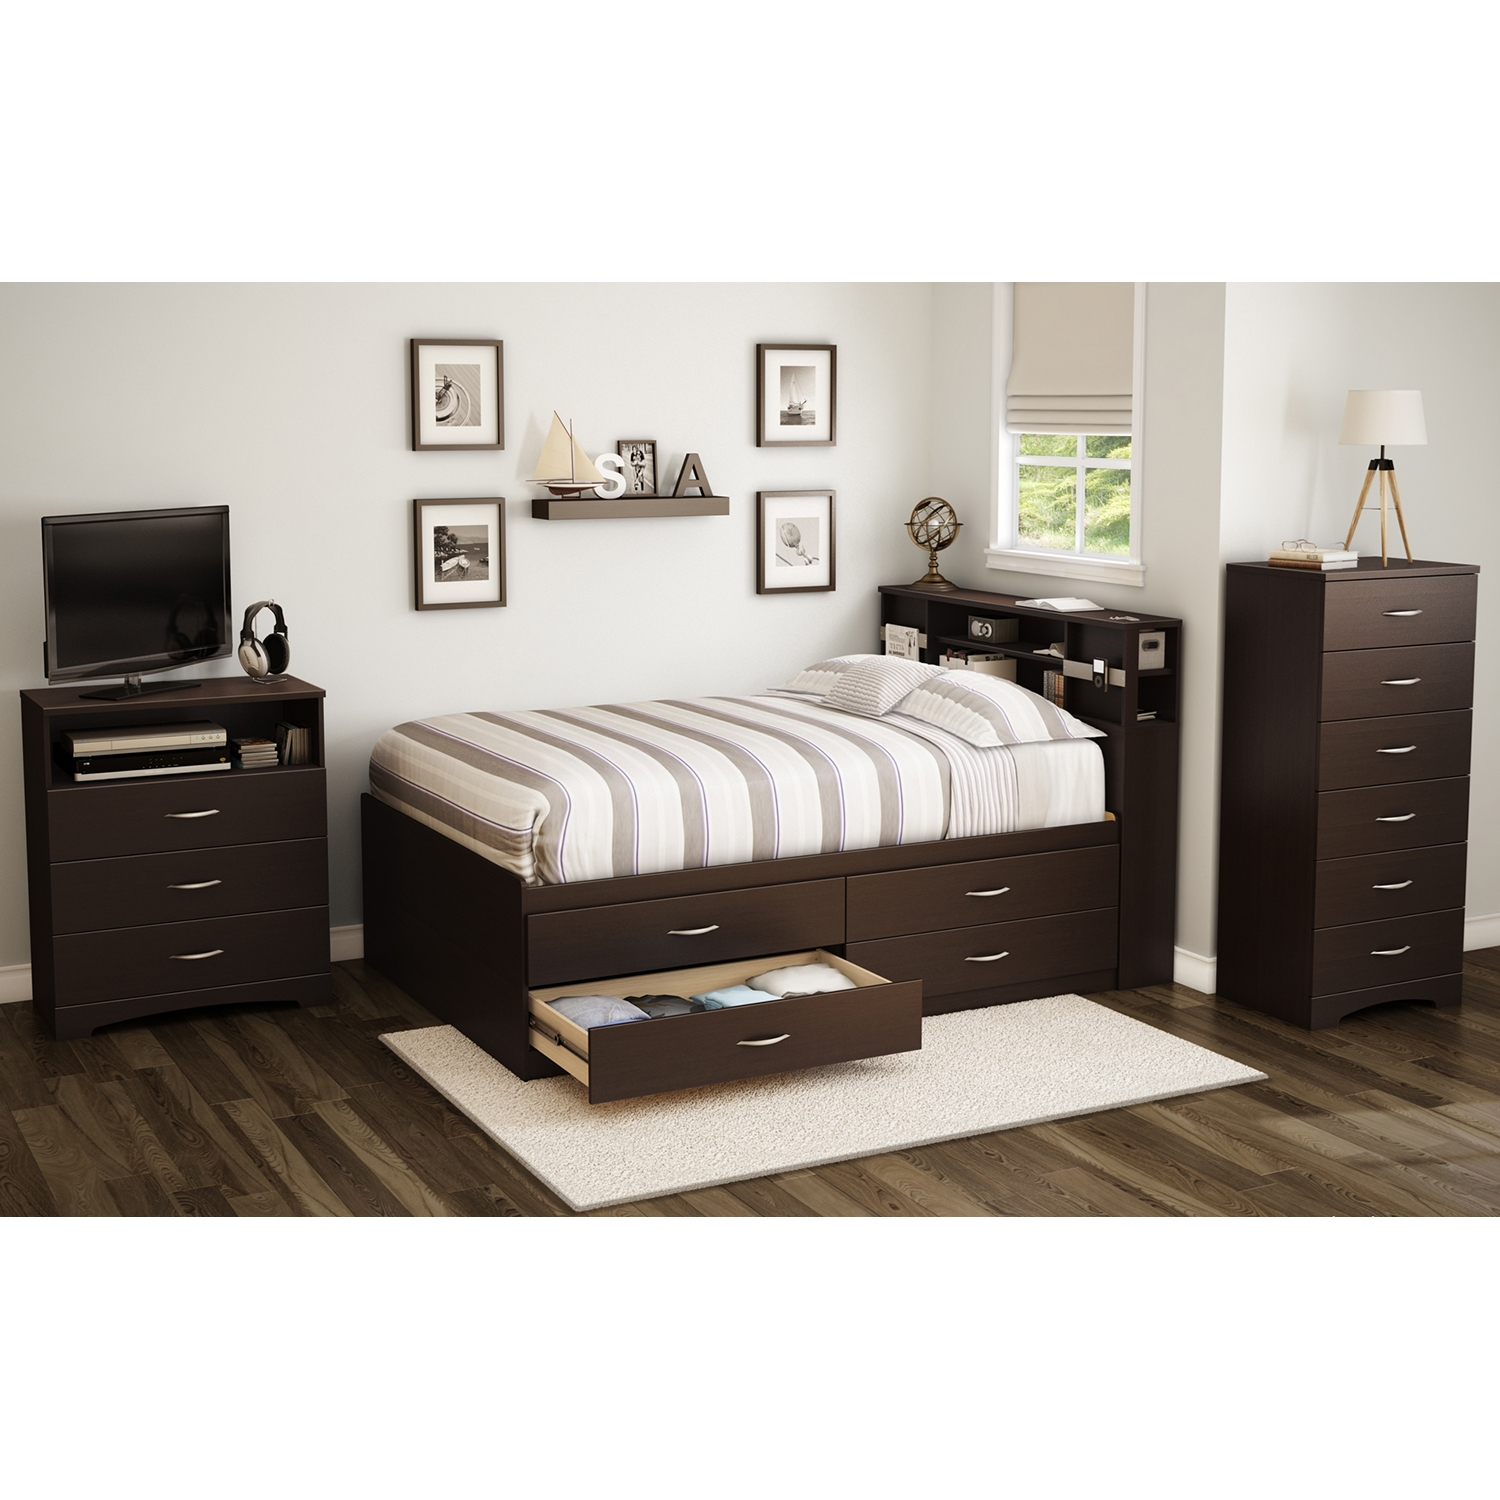 Step One Full Captain Bed - 4 Drawers, Chocolate - SS-3159209